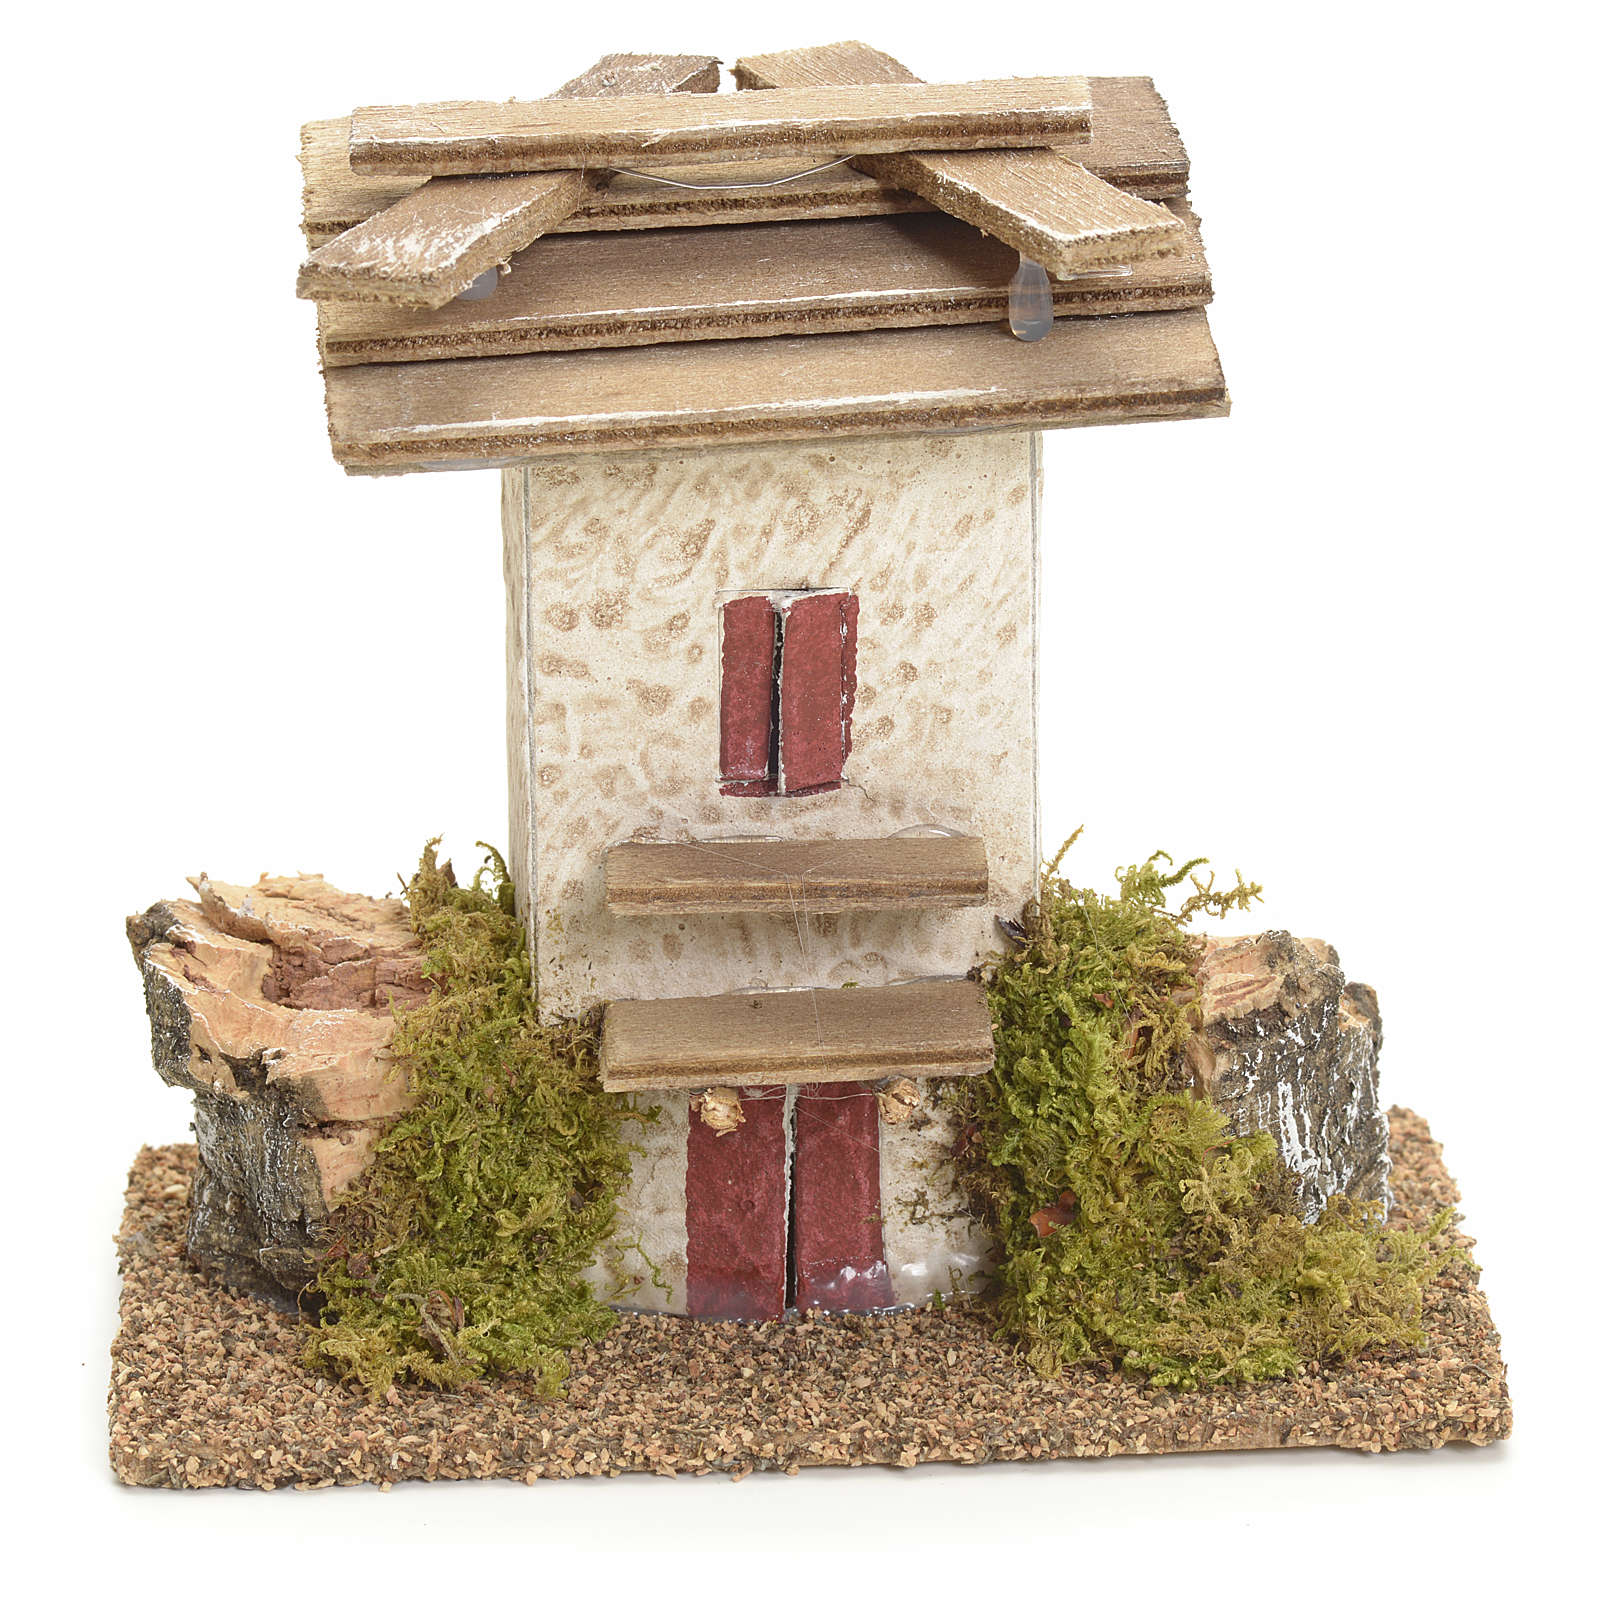 Nativity setting, rustic house with rocks and moss 11x11x6cm 4